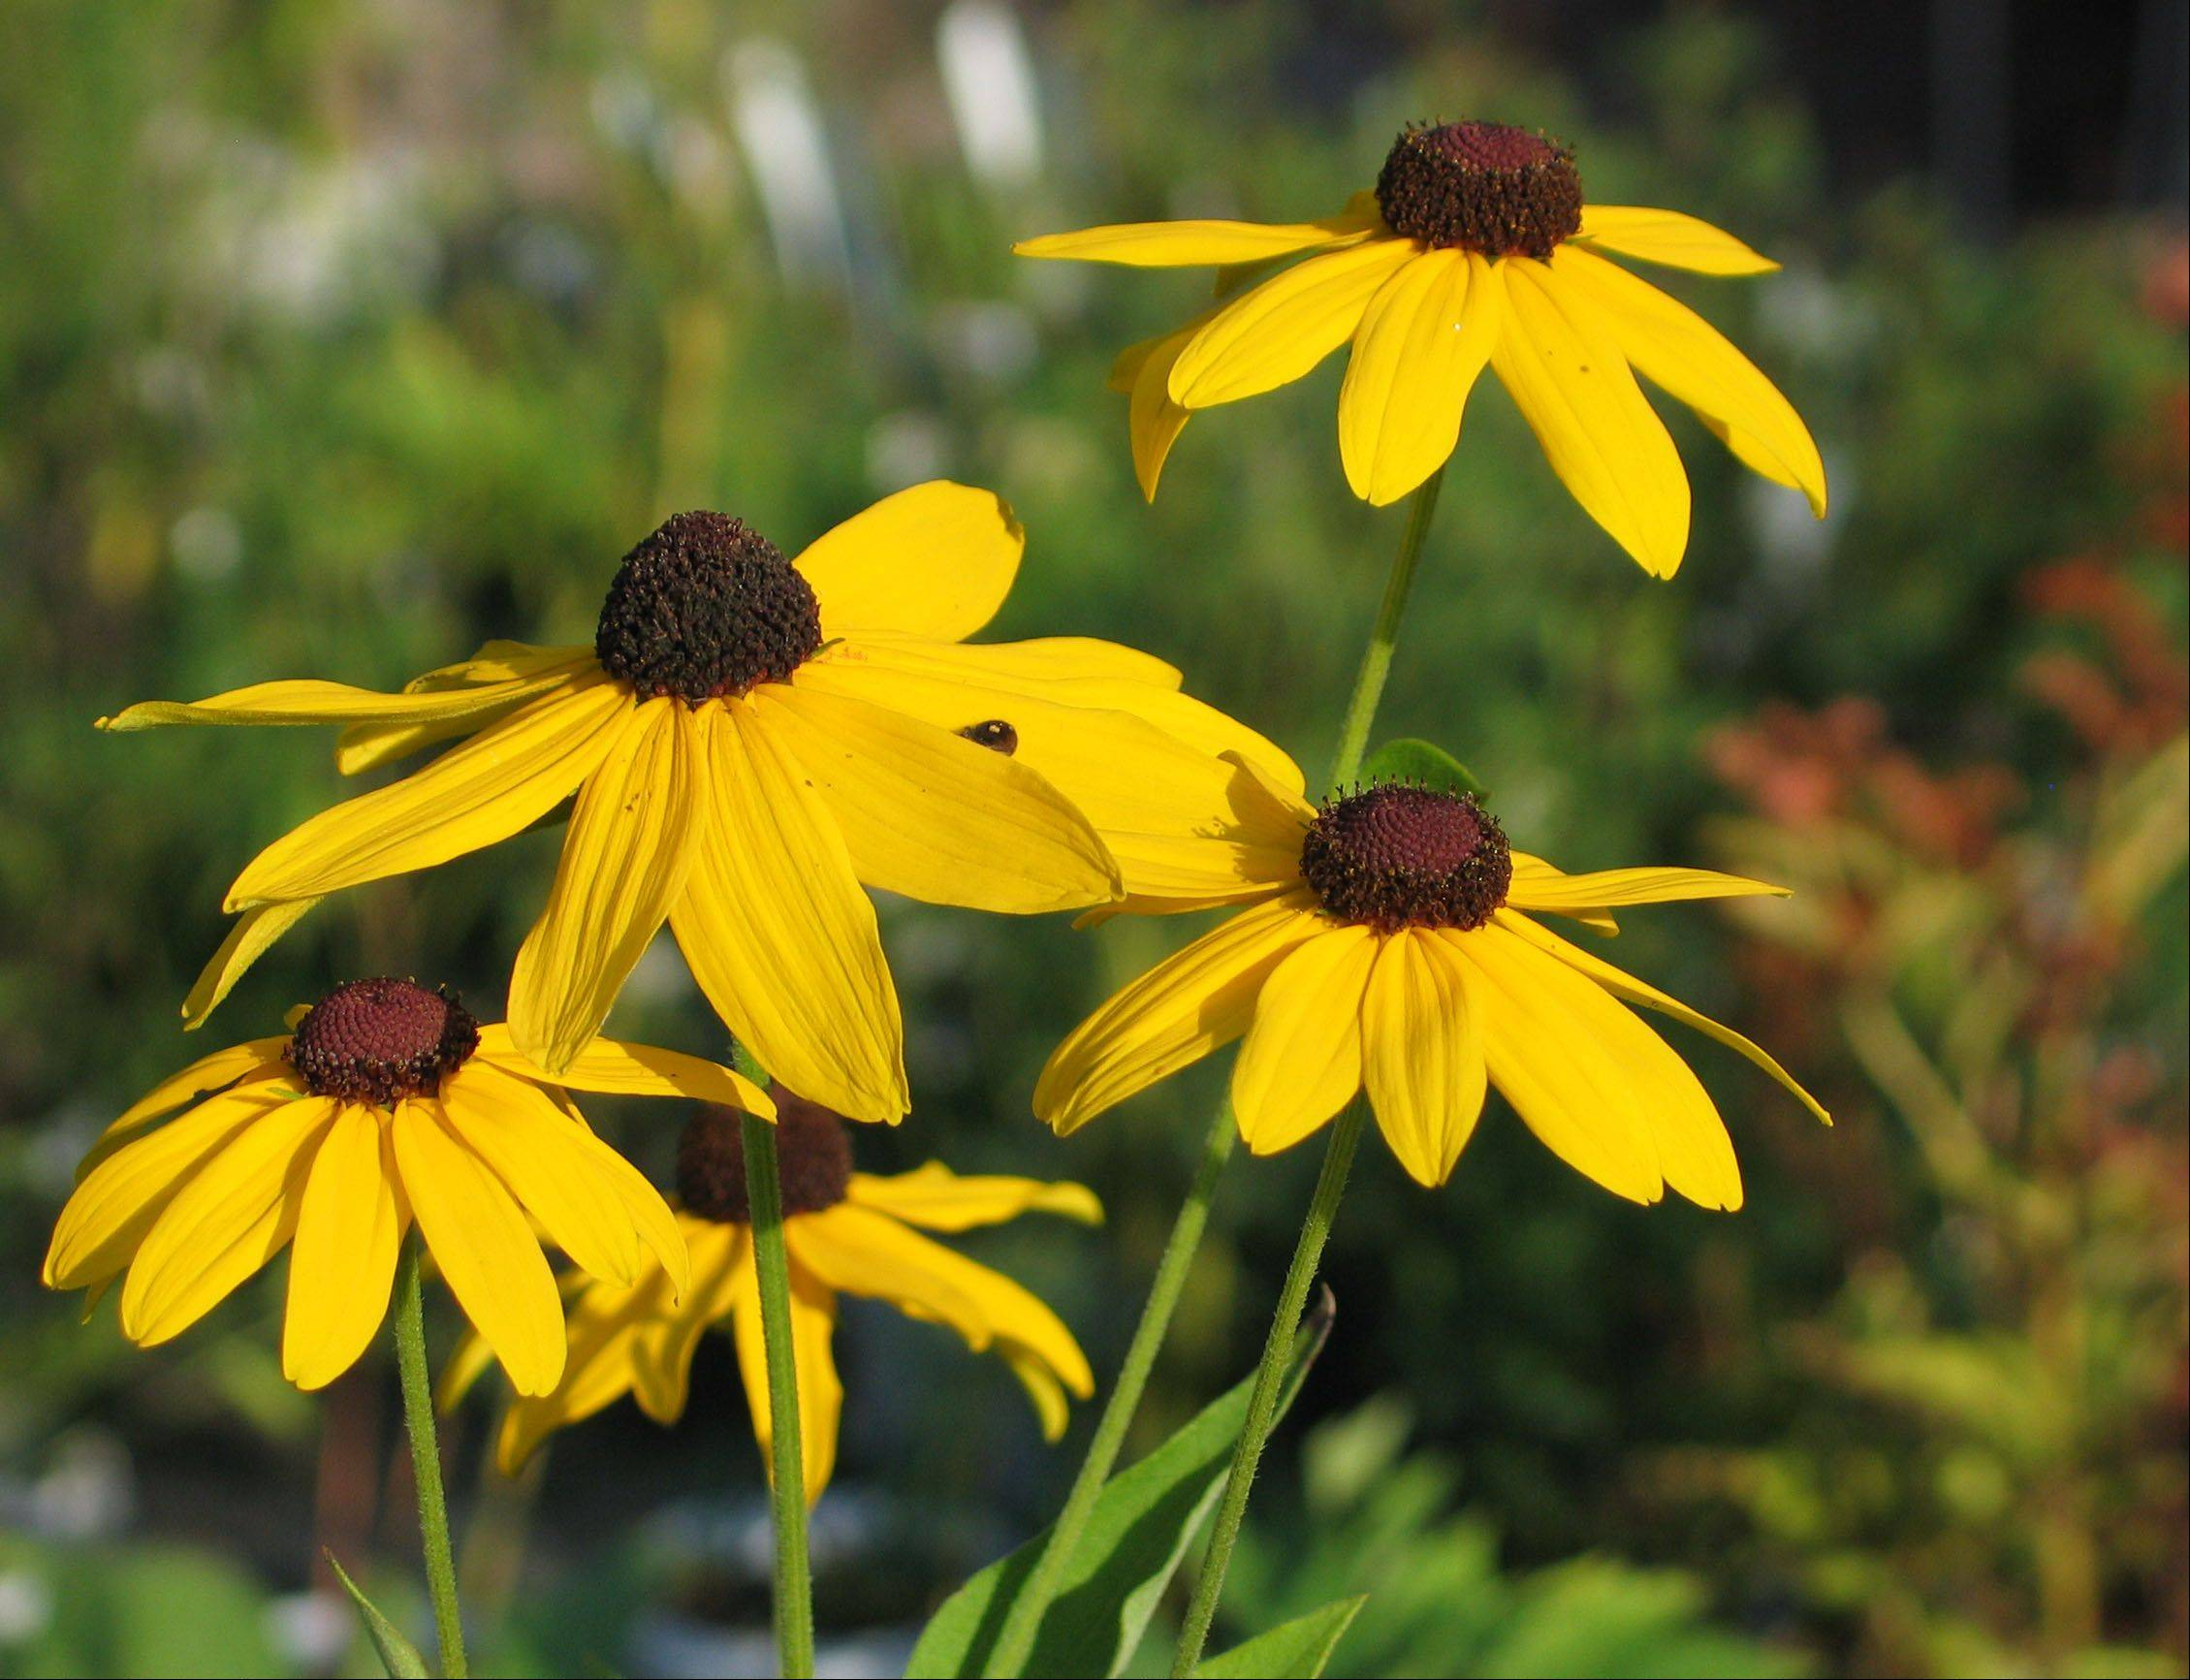 Rudbeckia, commonly known as black-eyed Susan, is a popular native prairie plant.